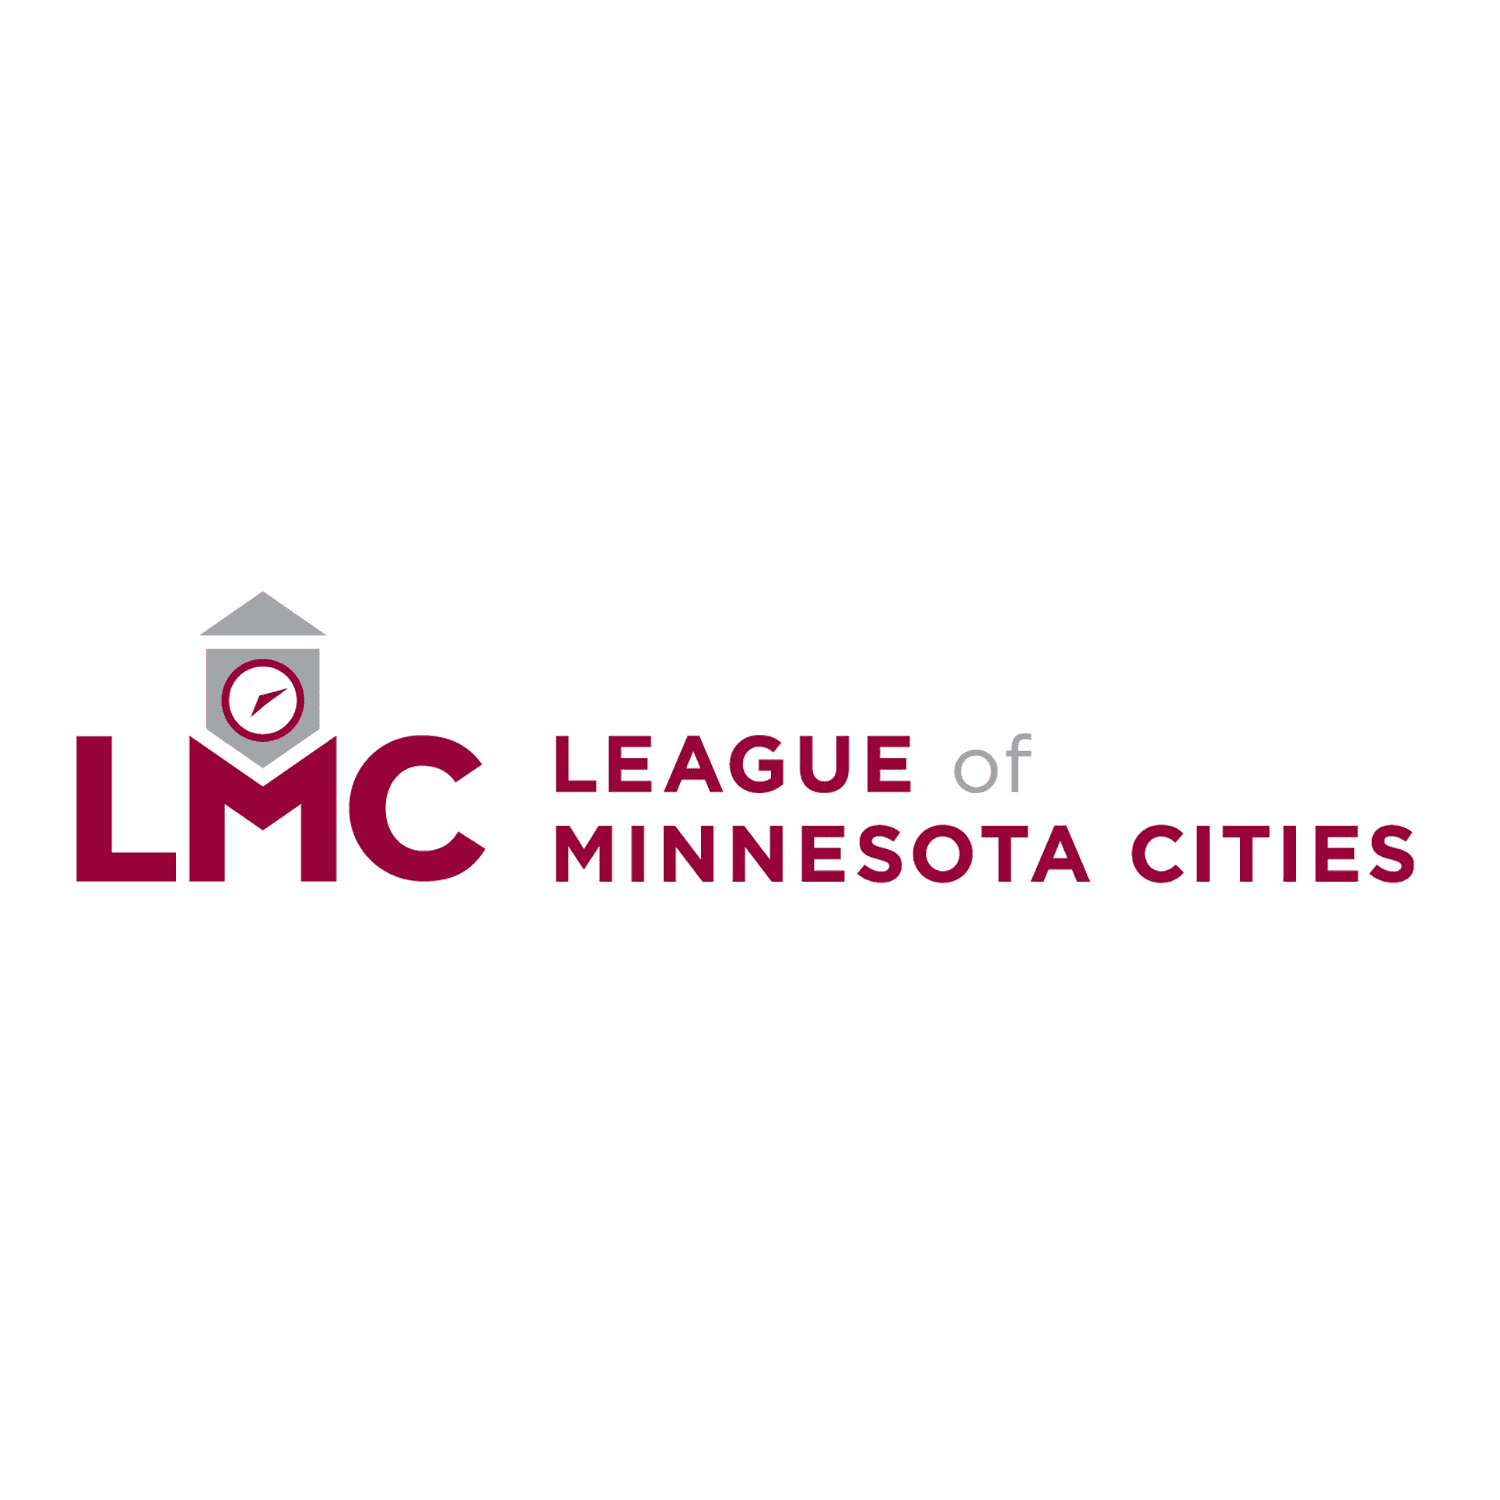 square league of mn cities